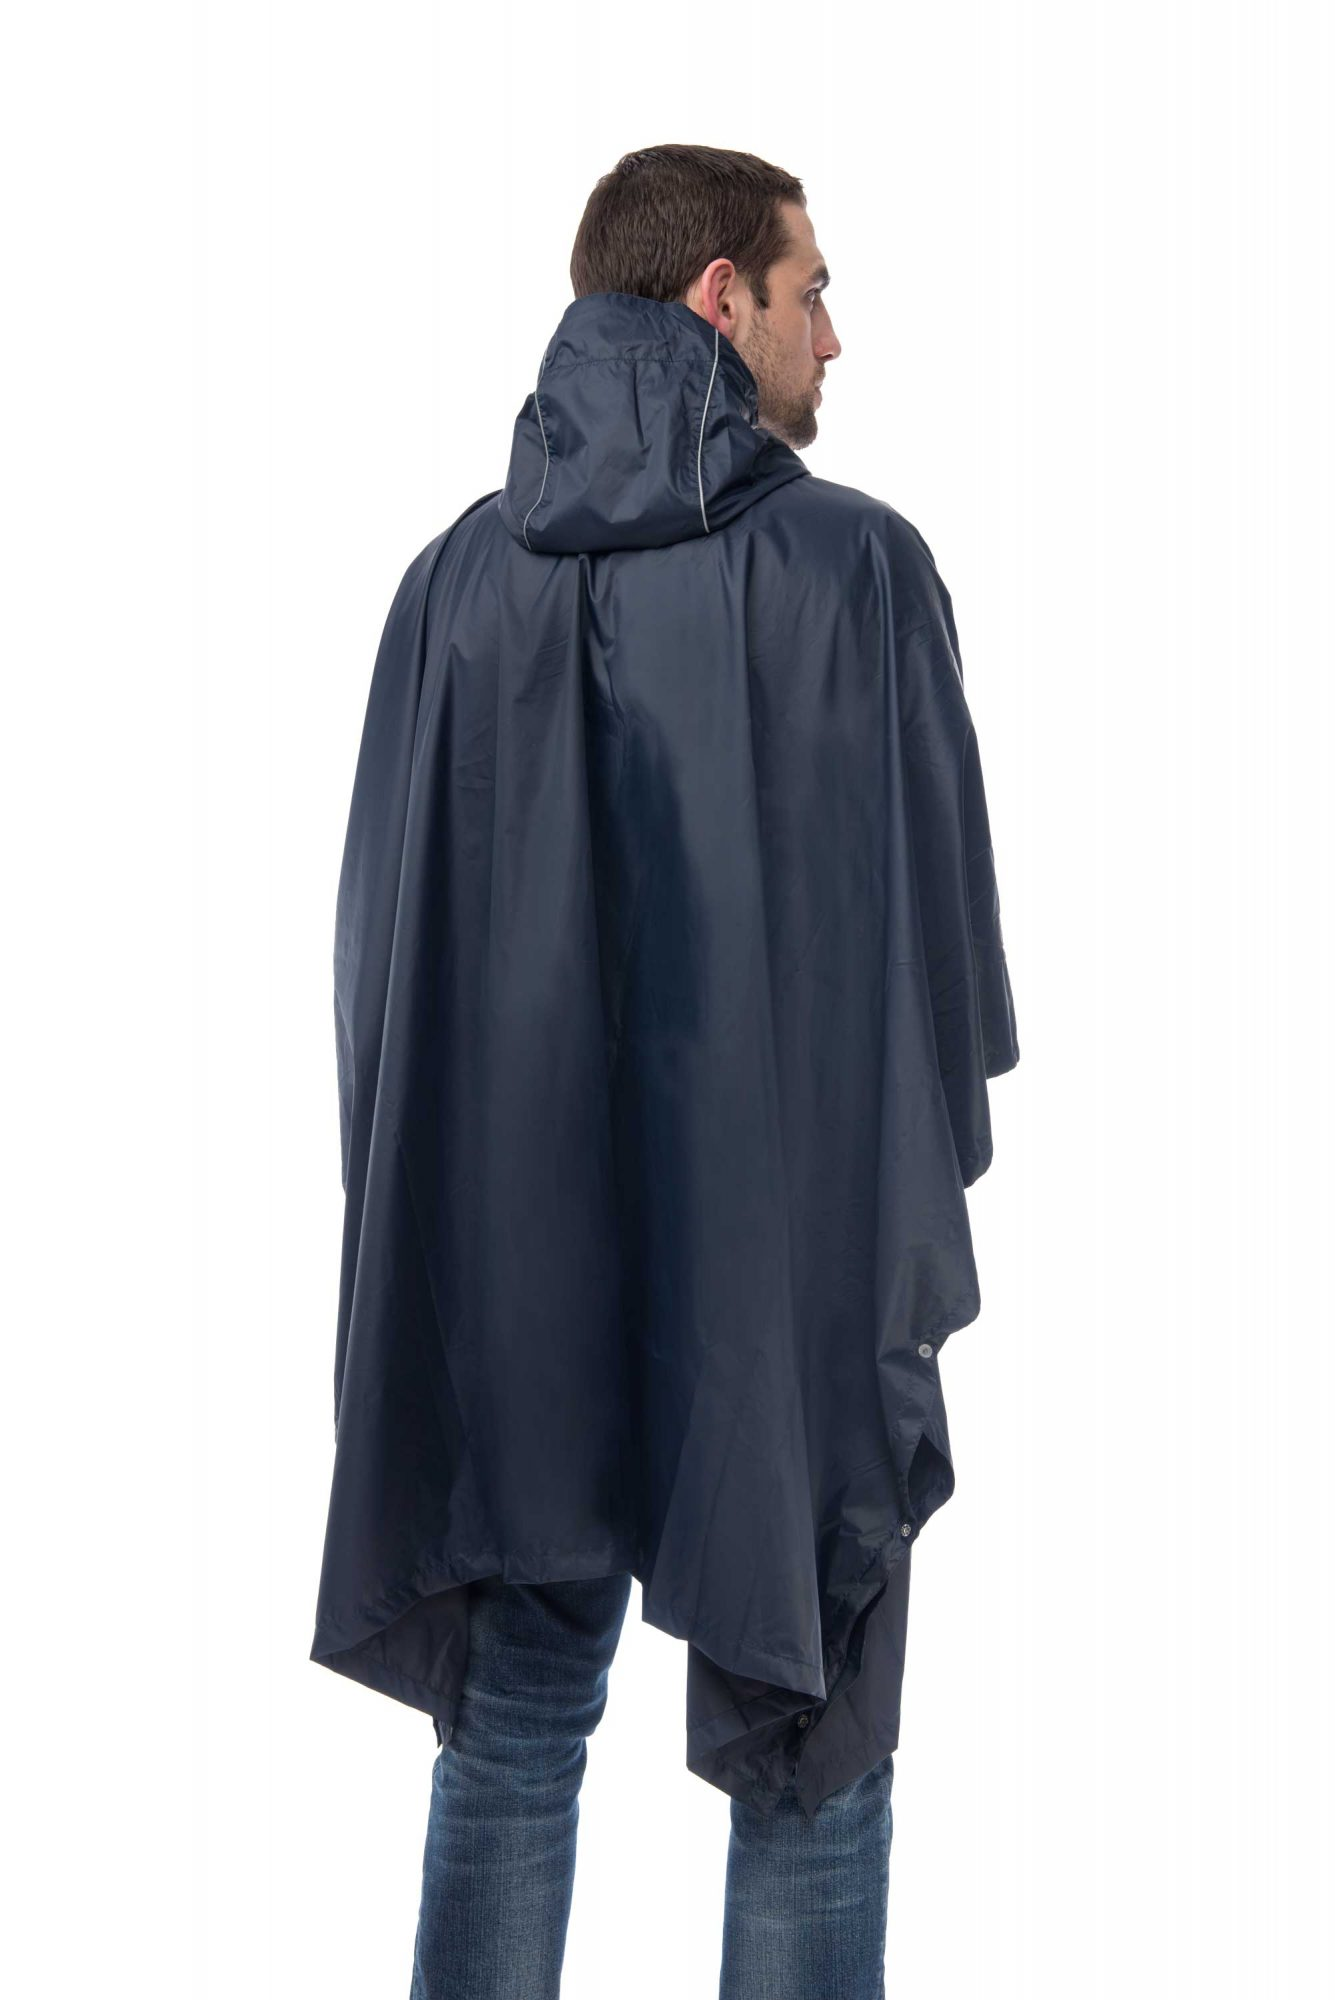 Mac In A Sac Unisex Waterproof Poncho Walk The Storm